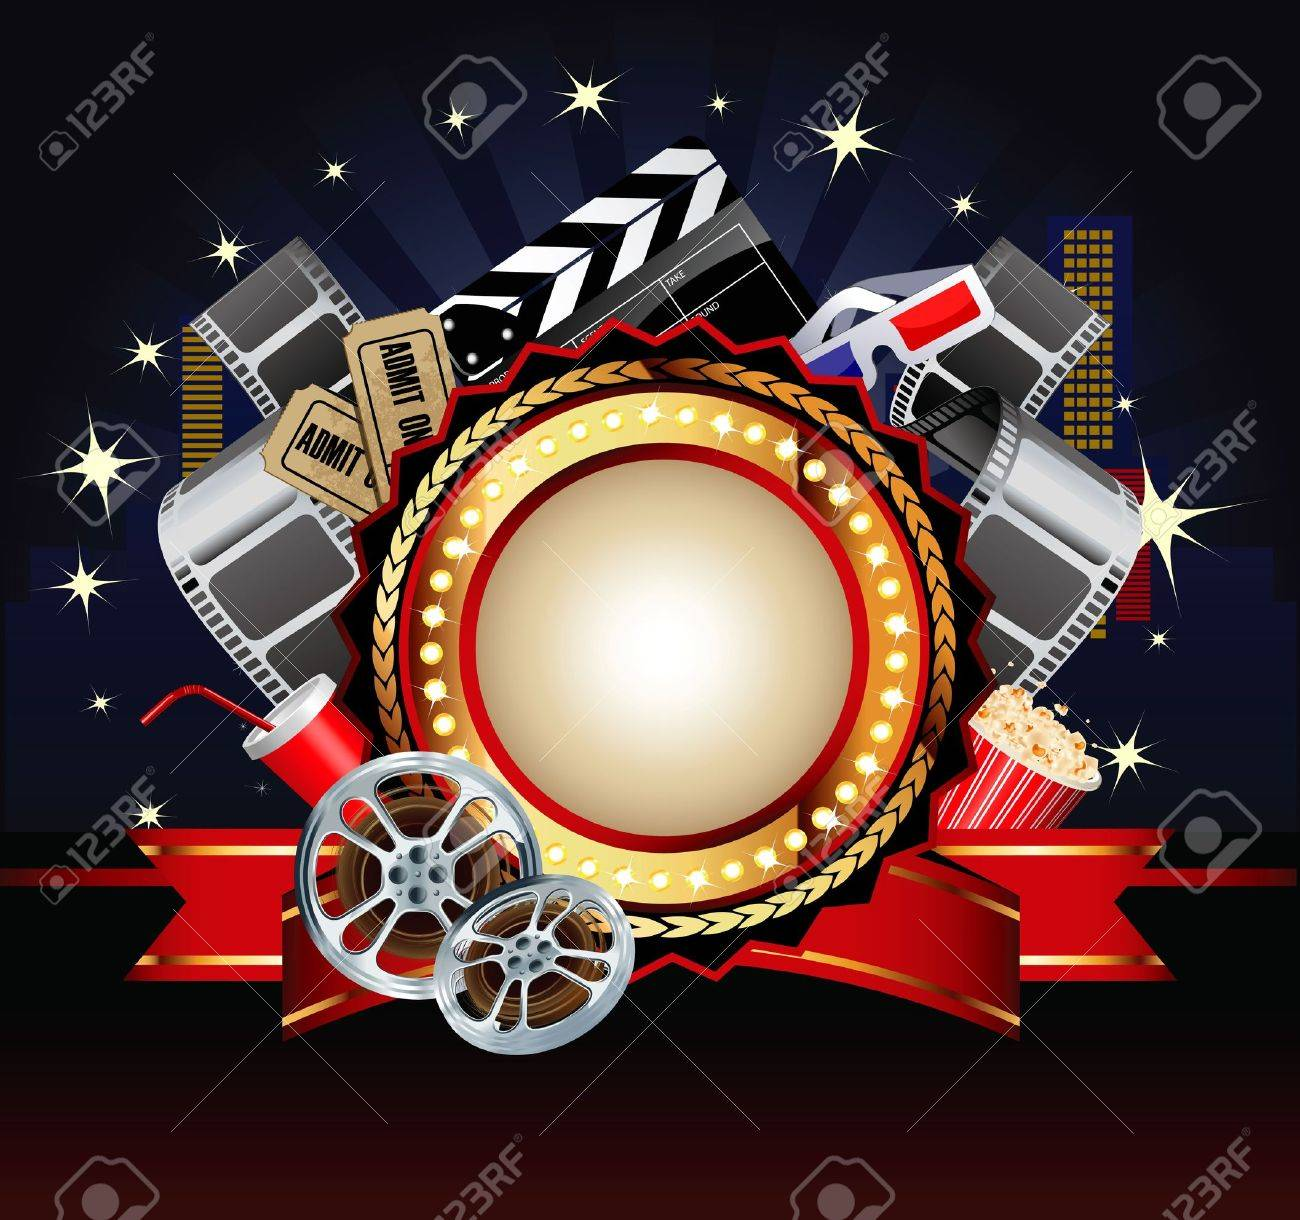 Movie or film theme composition. Stock Vector - 14567751